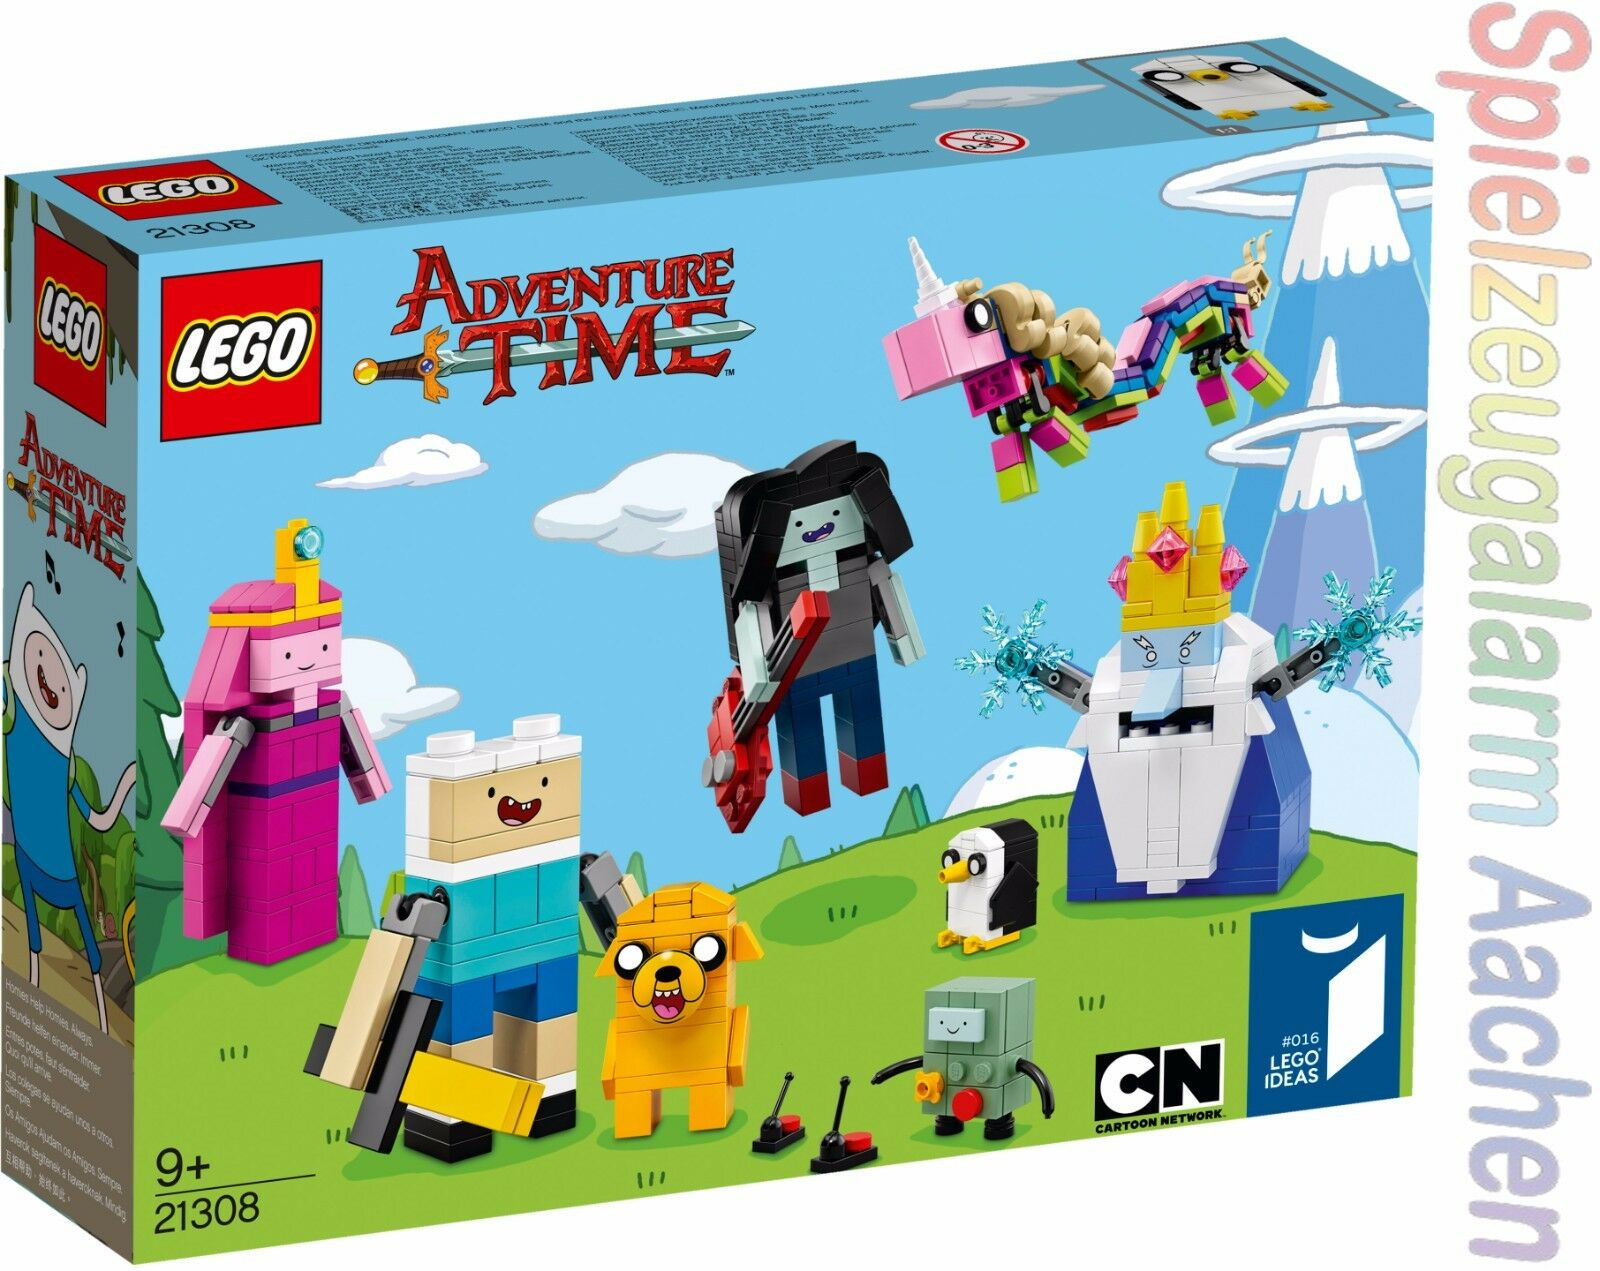 LEGO ® Ideas Exclusive 21308 Adventure Time™ by CN